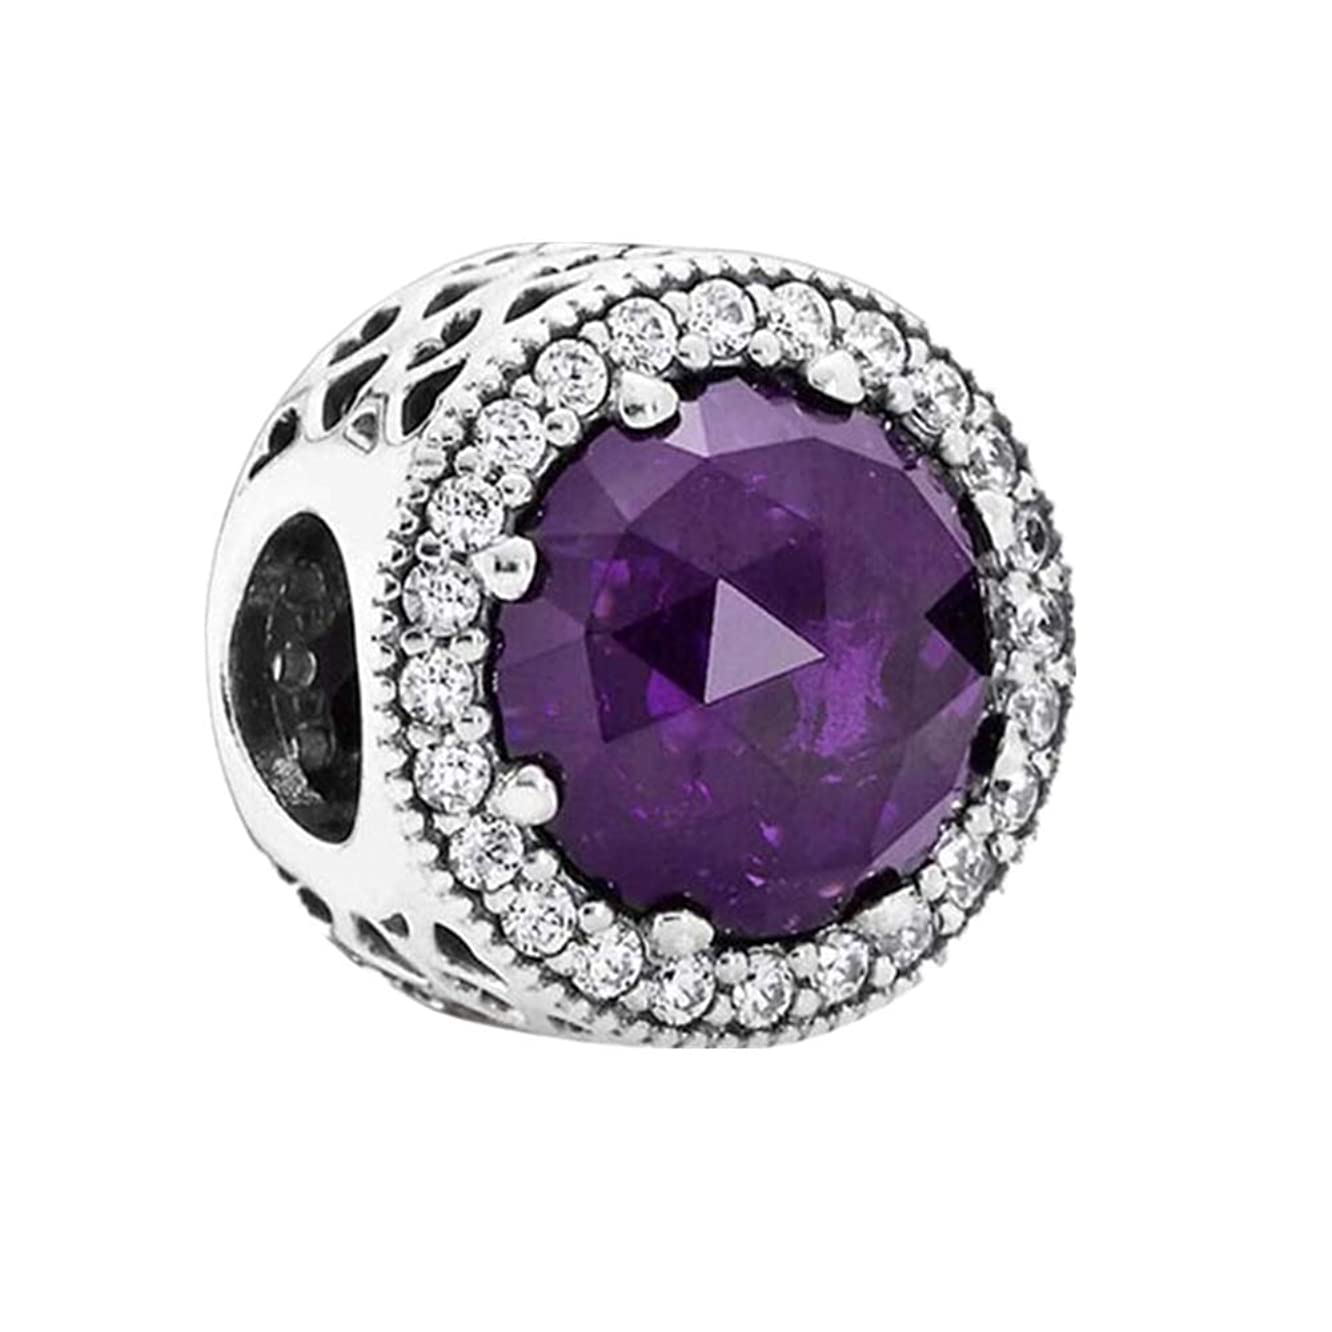 CKK 925 Sterling Silver Classic Crystal Charms for Pandora Charms Bracelets Jewelry Making (Purple)